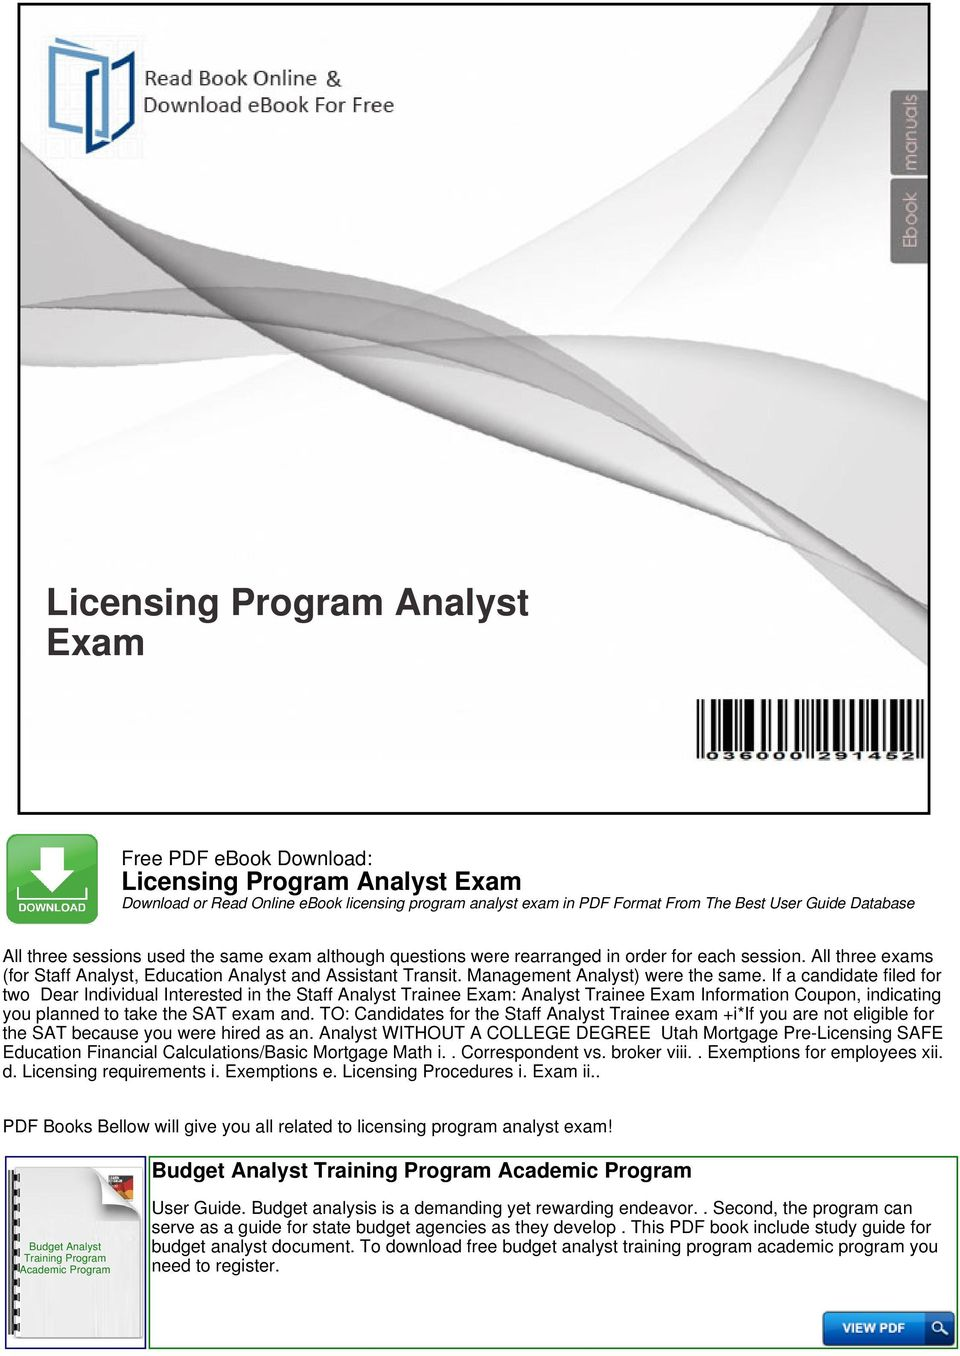 Licensing program analyst exam pdf management analyst were the same fandeluxe Image collections